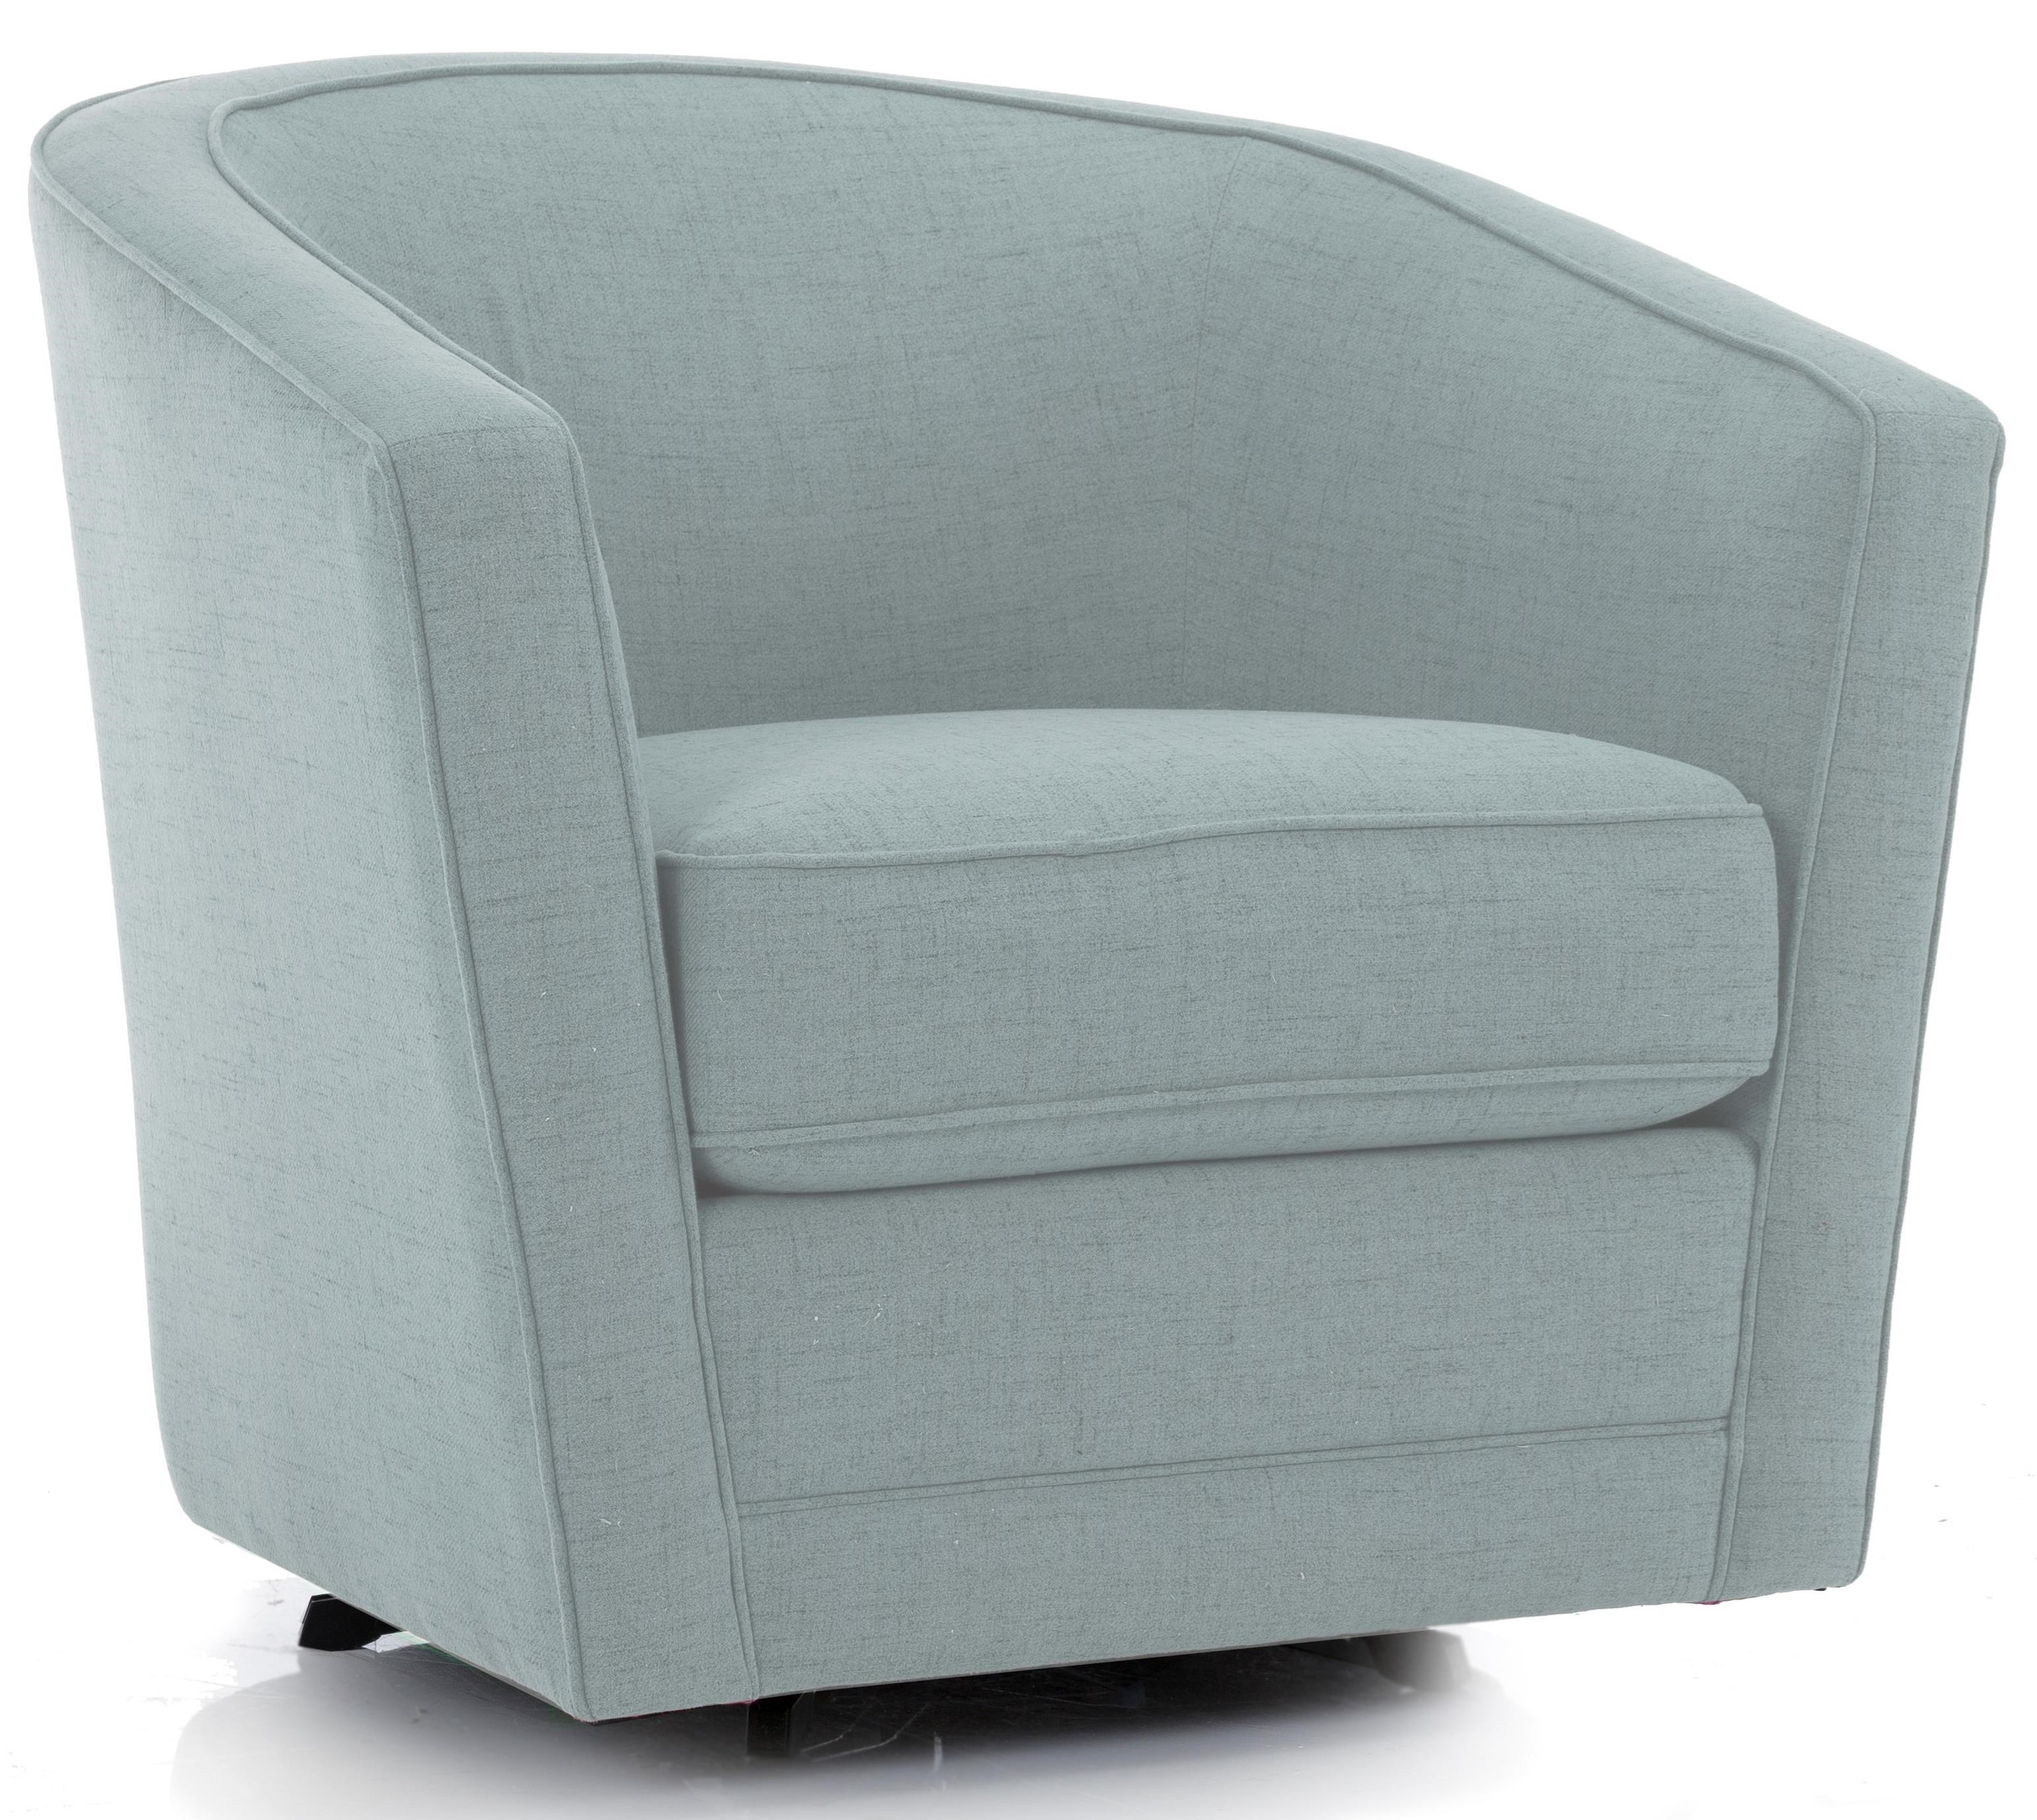 Decor-Rest 2693 Swivel Chair - Item Number: 2693 Swivel Chair-WOOL SKY